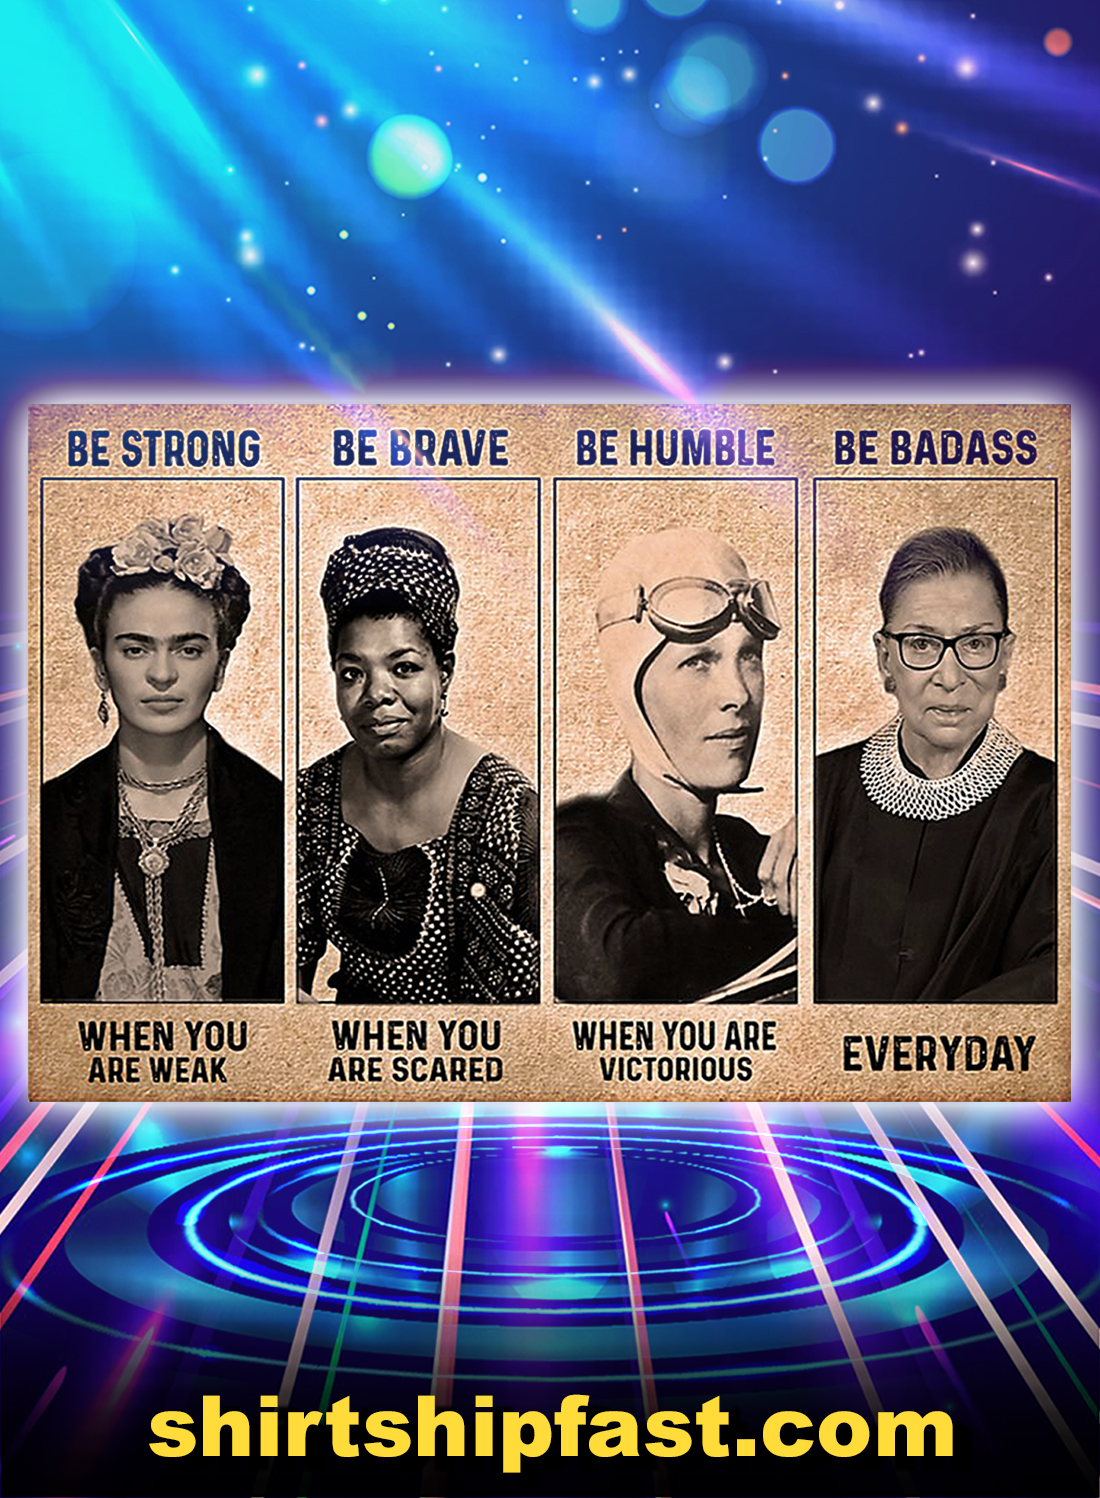 Frida kahlo and maya angelou feminist be strong be brave be humble be badass poster